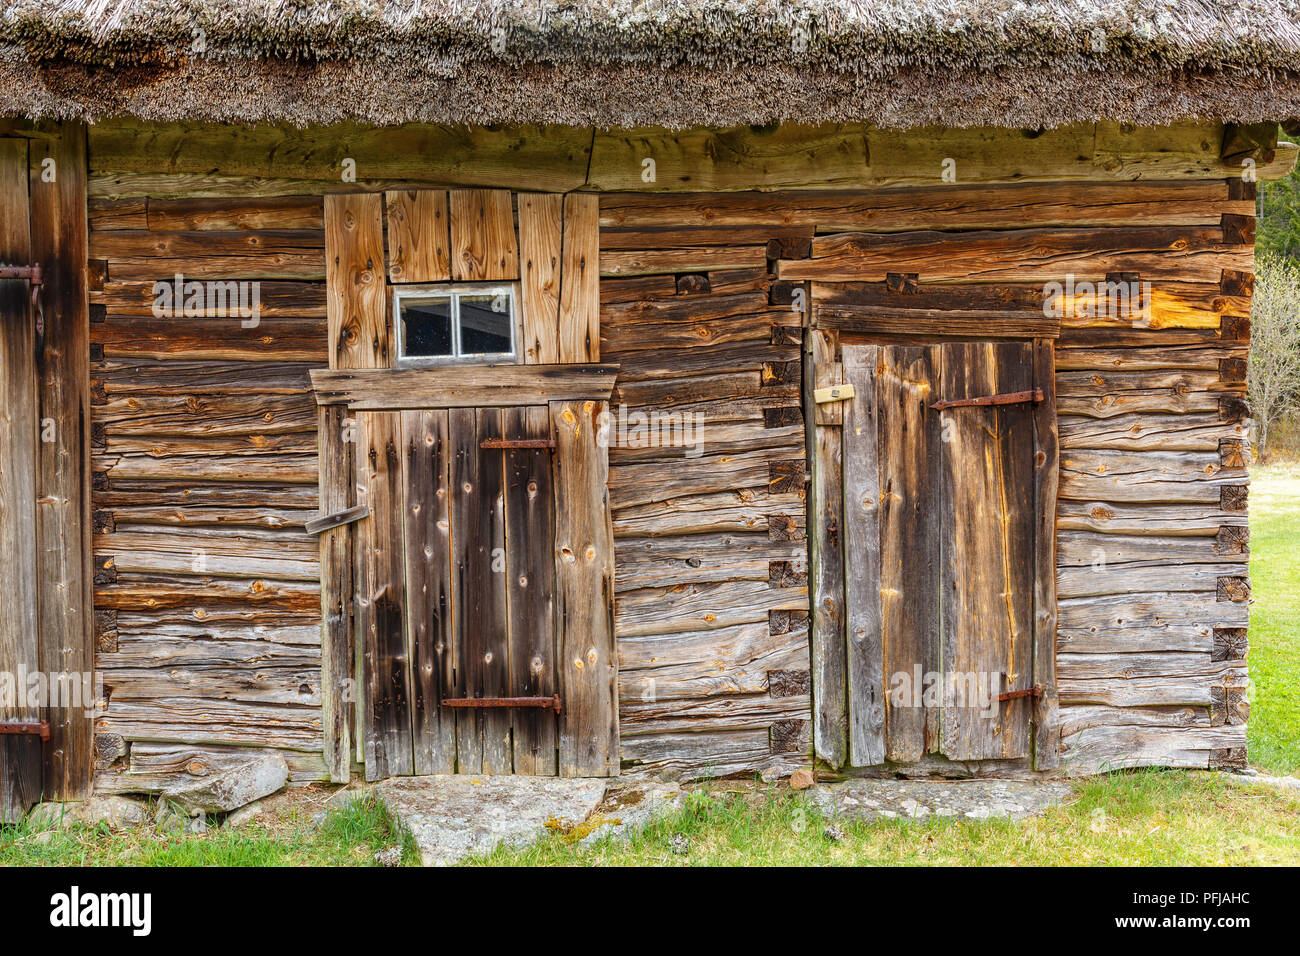 Doors on an old log barn with a thatched roof - Stock Image